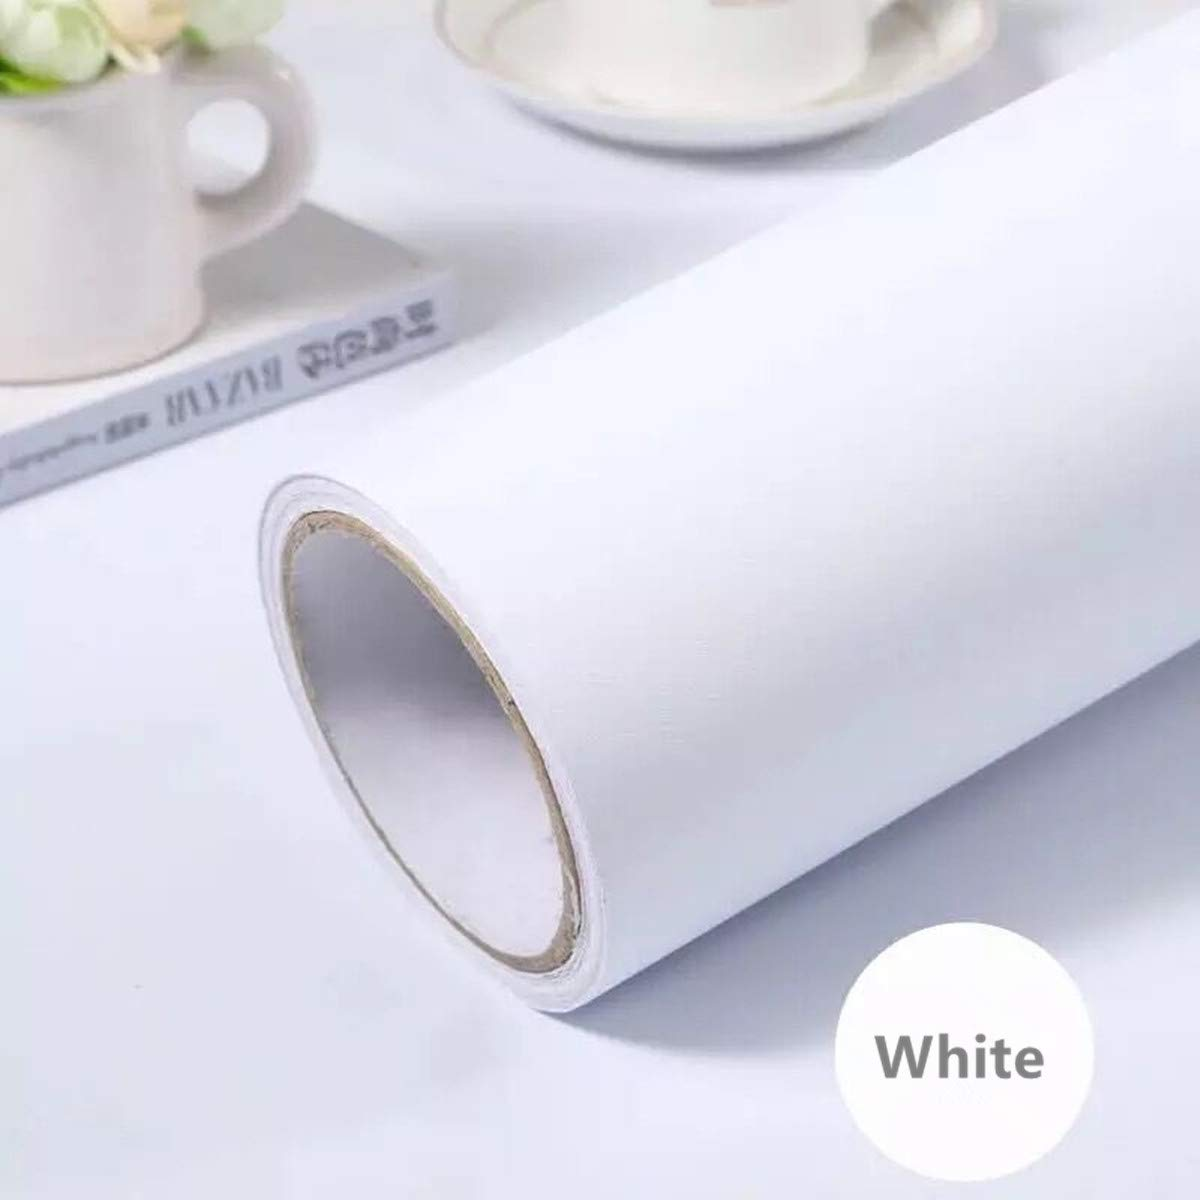 Amazoncom practicalWs White Self Adhesive Wallpaper Film Stick 1200x1200